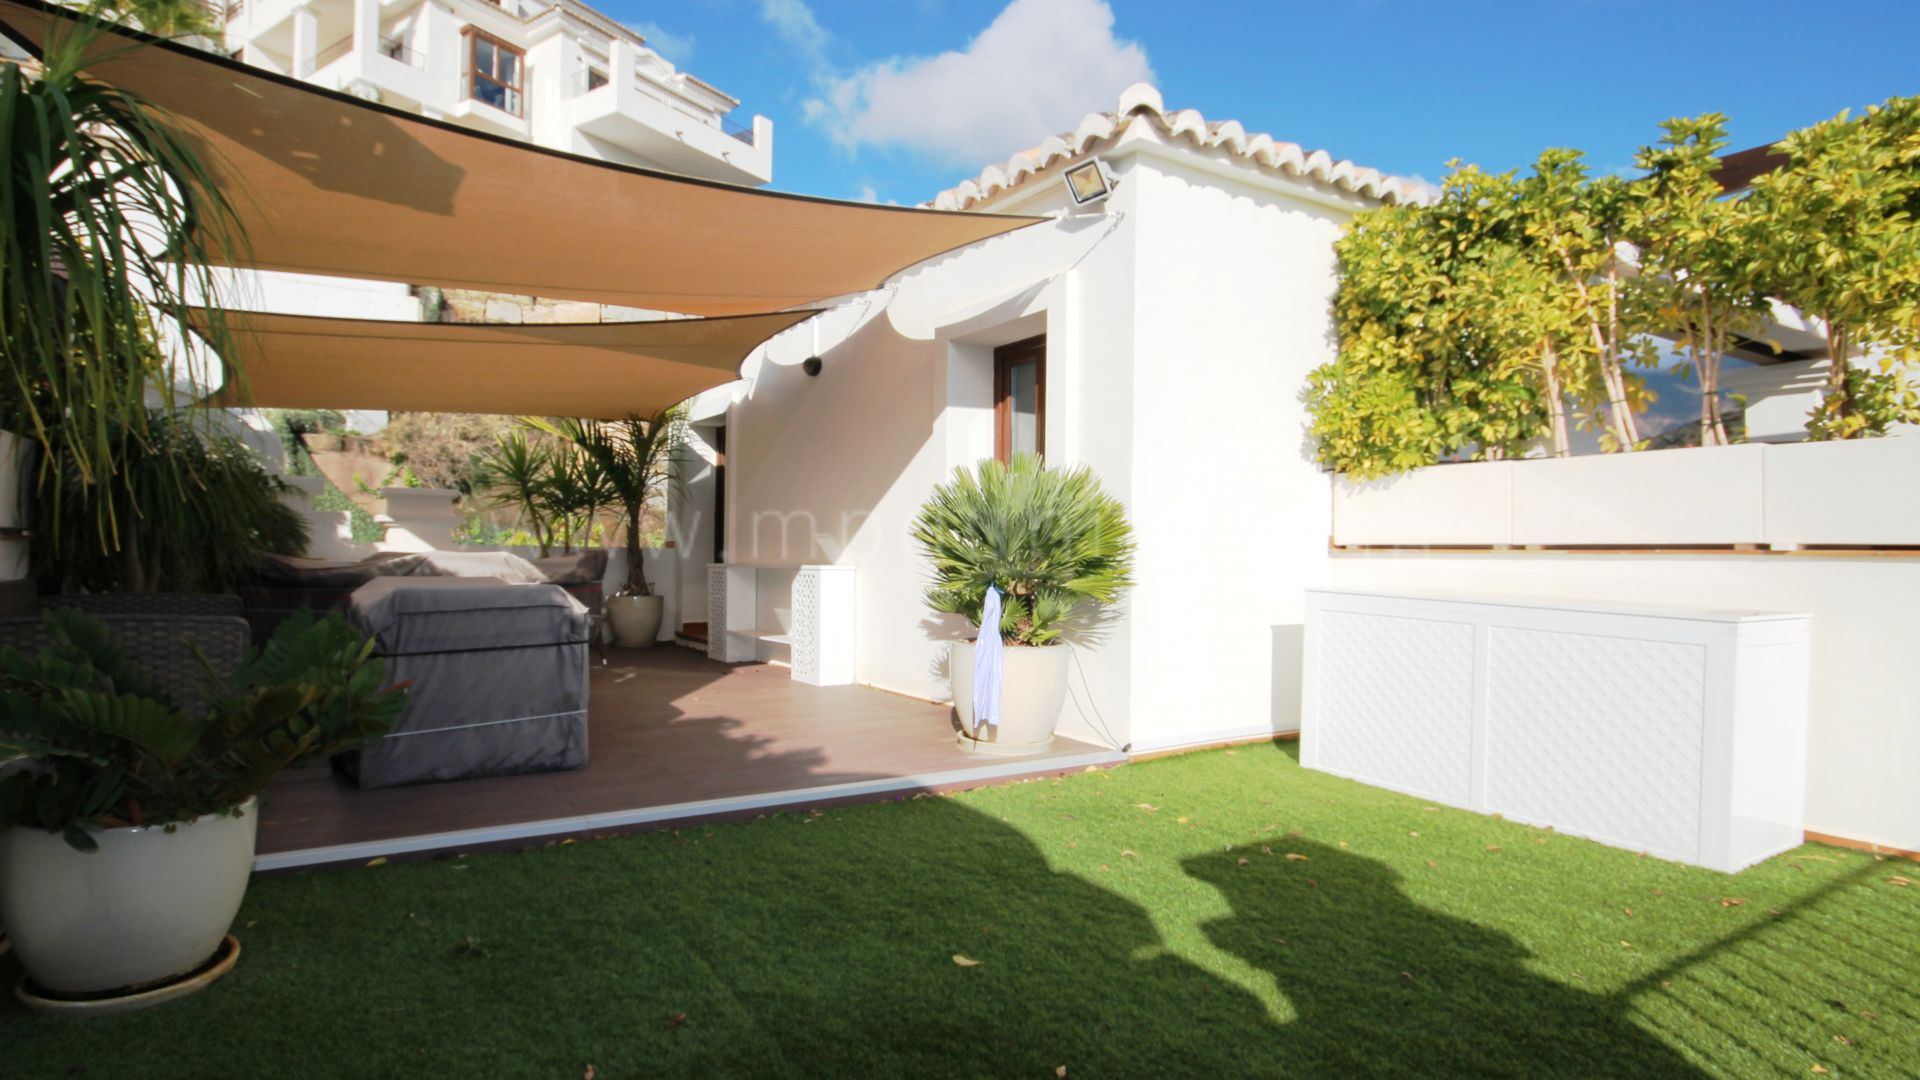 Townhouse in Benahavis Hills - Gallery